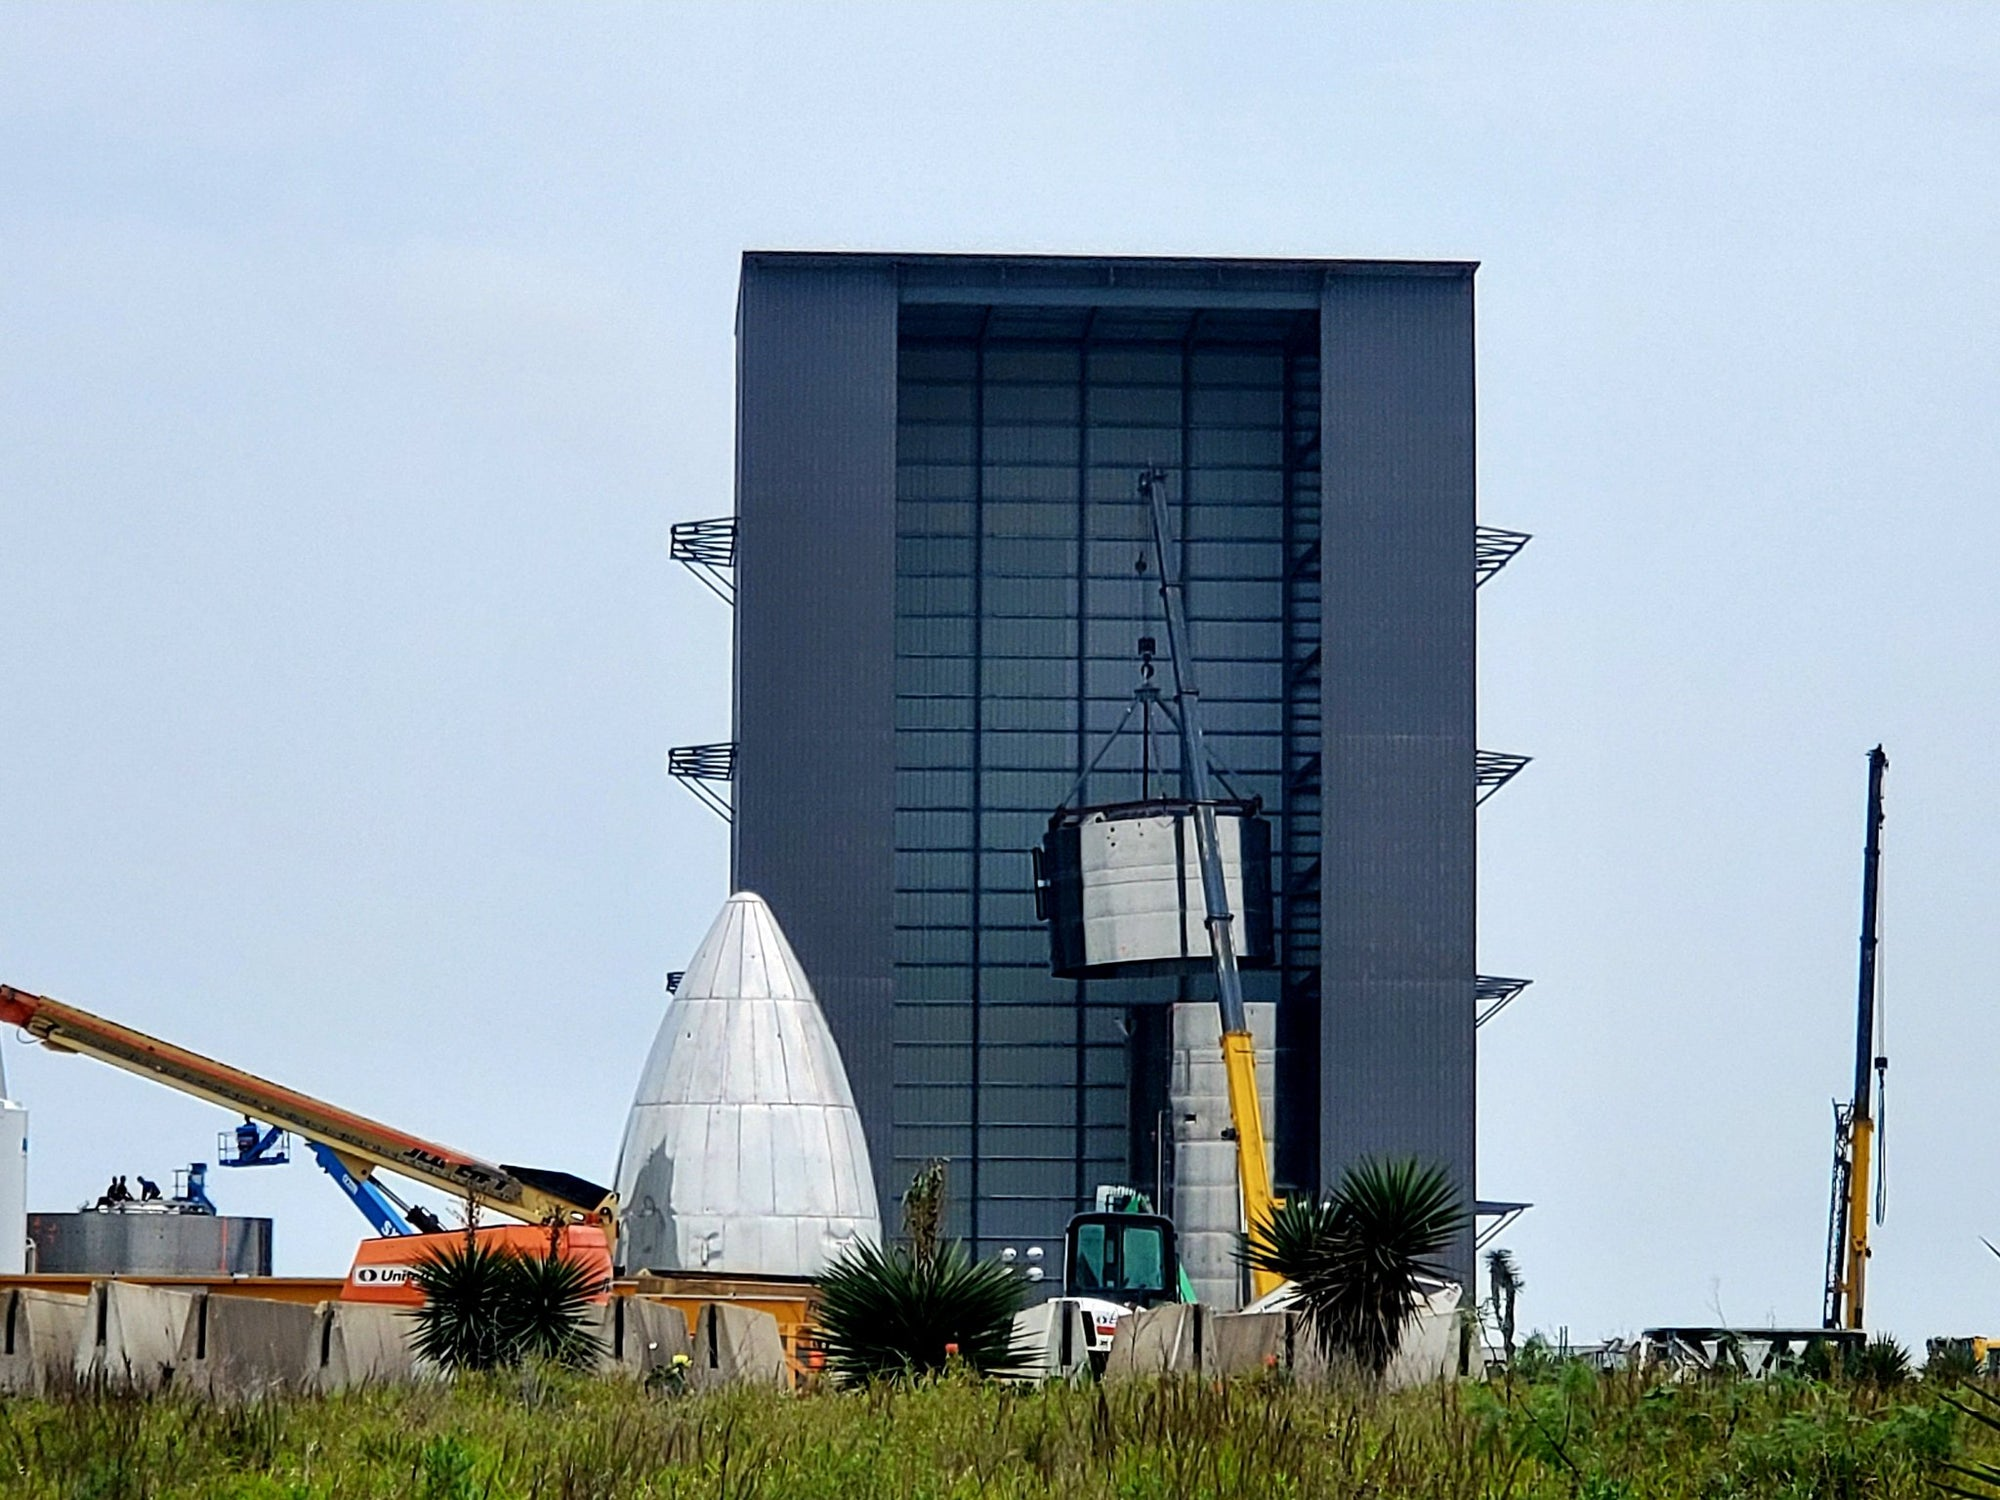 SpaceX is rapidly building the fourth prototype of Starship in Texas